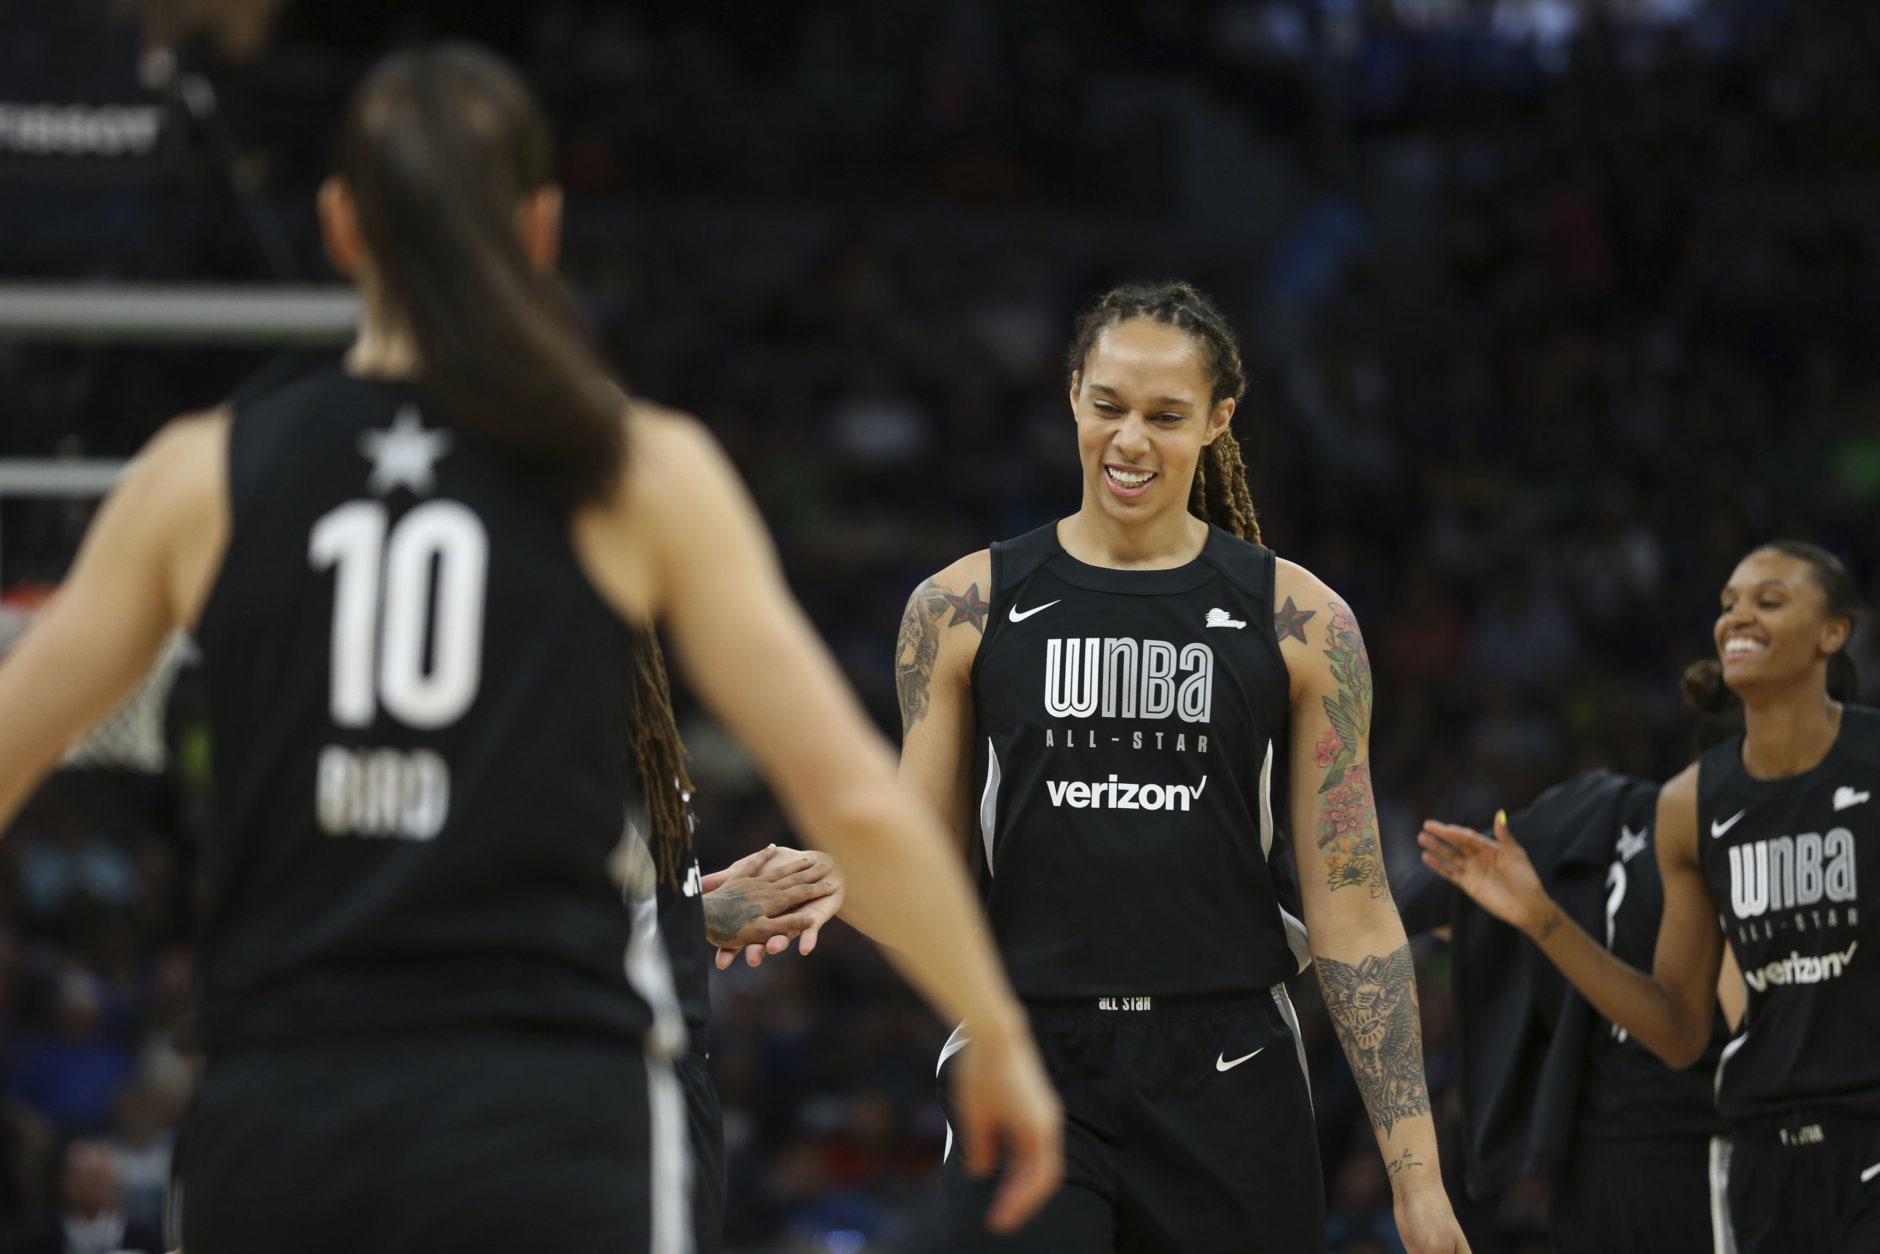 Team Delle Donne's Brittney Griner, middle, smiles as she high-fives teammate Seimone Augustus in the first half of the WNBA All-Star basketball game against Team Candace Parker, Saturday, July 28, 2018 in Minneapolis. (AP Photo/Stacy Bengs)